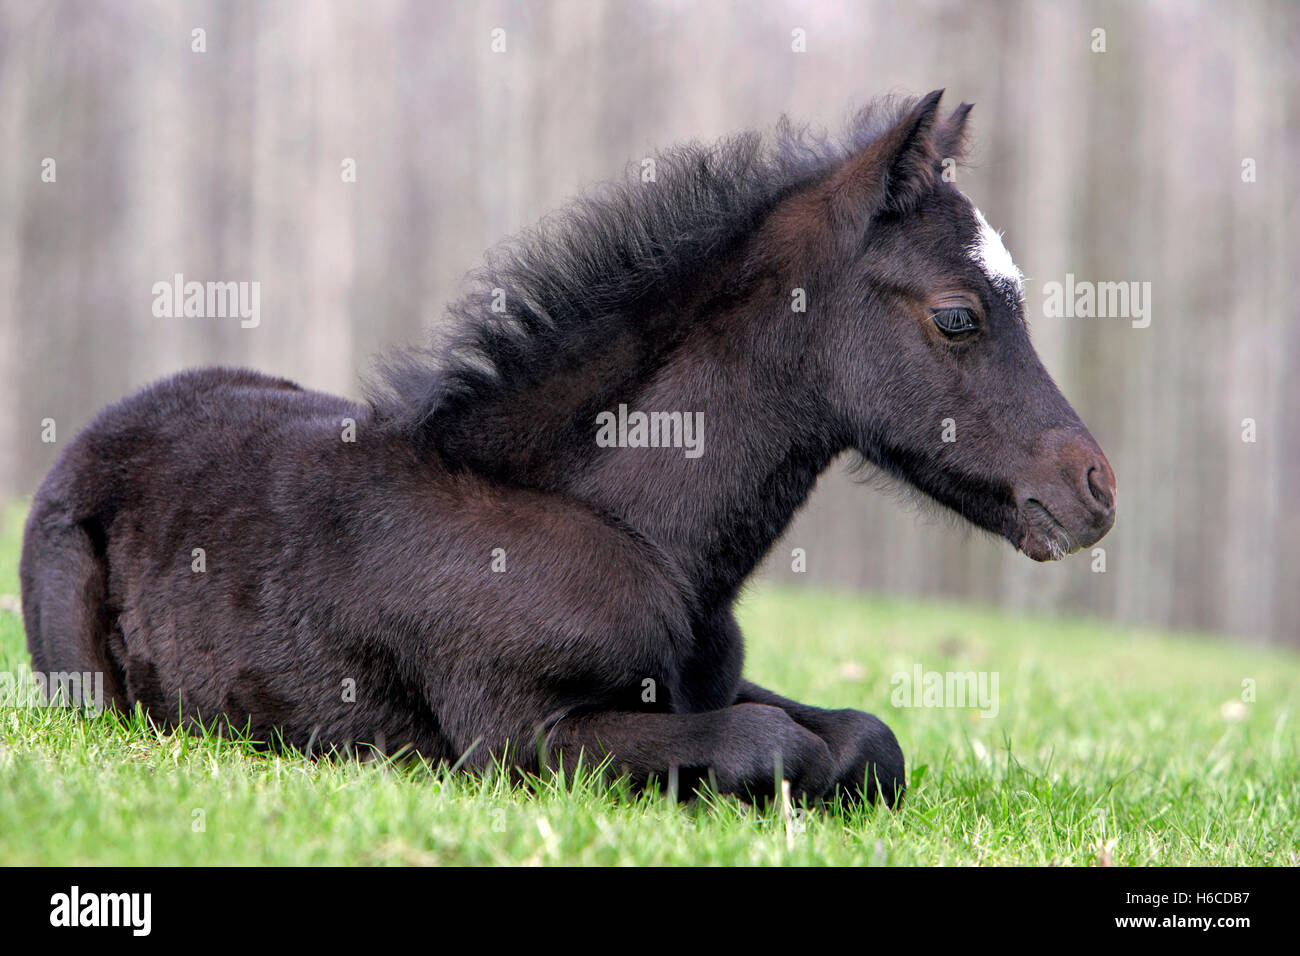 Black Welsh Pony Foal , one week old, resting at pasture - Stock Image